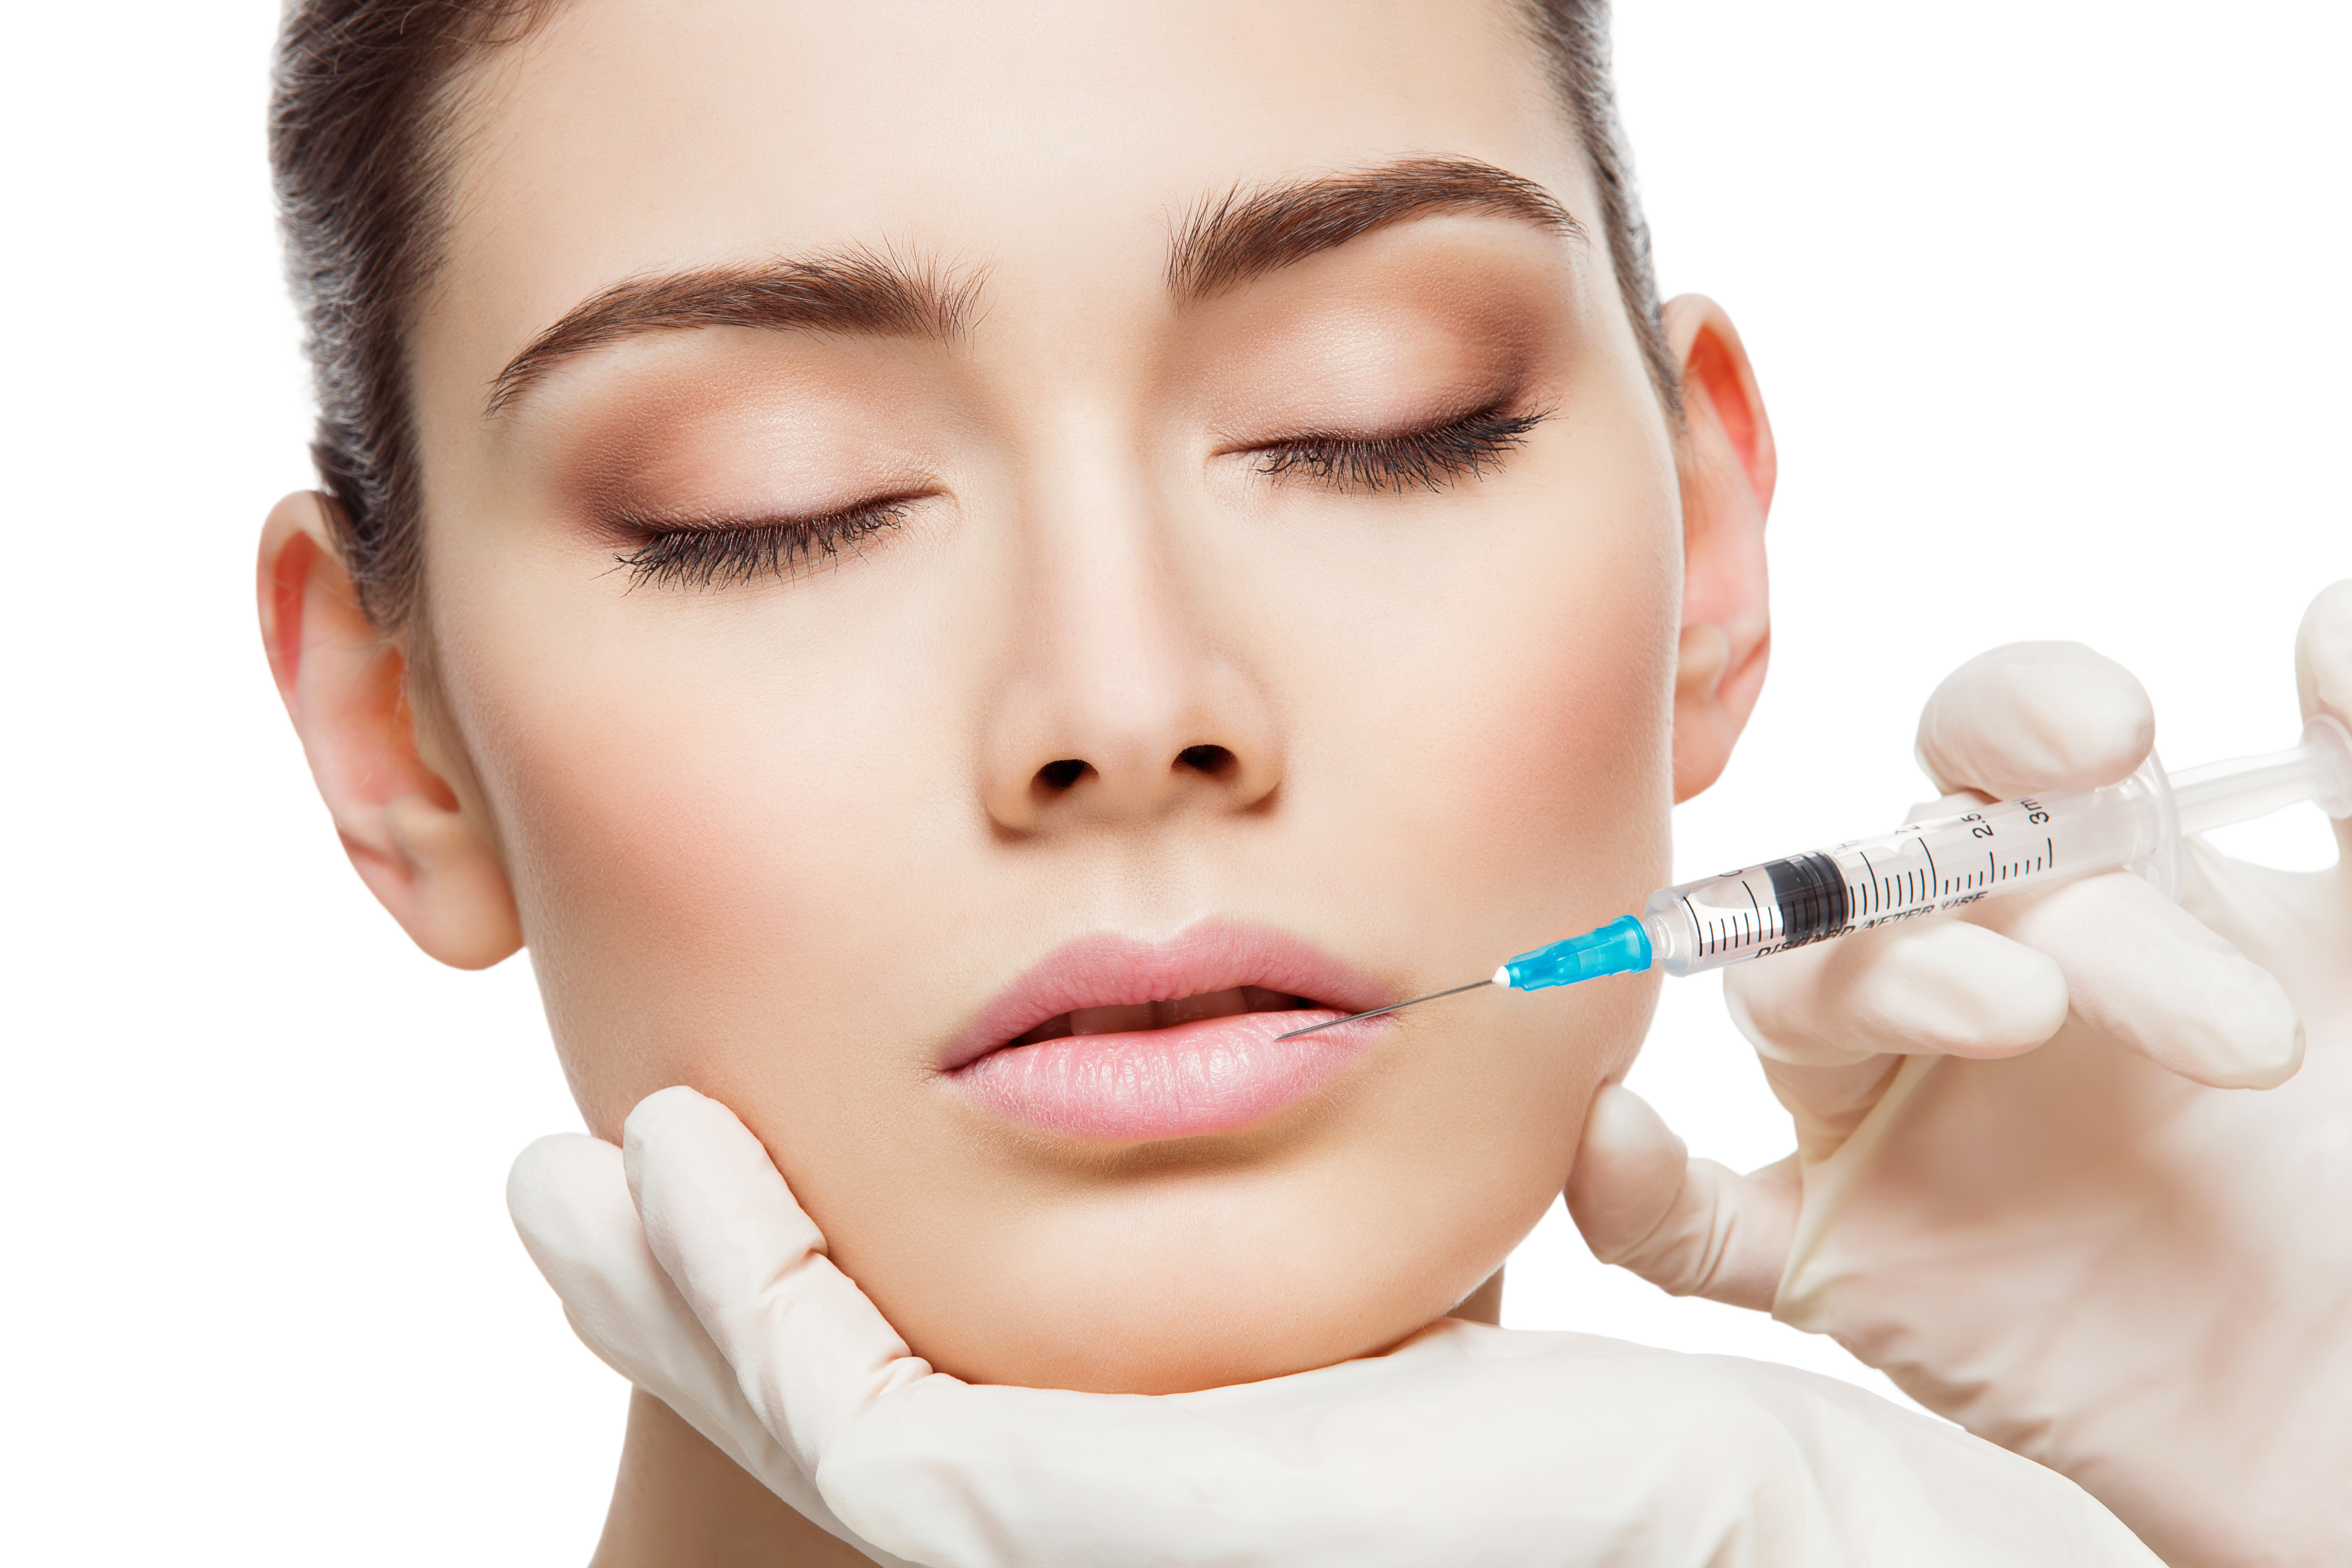 CONSULT FOR COSMETIC INJECTABLES